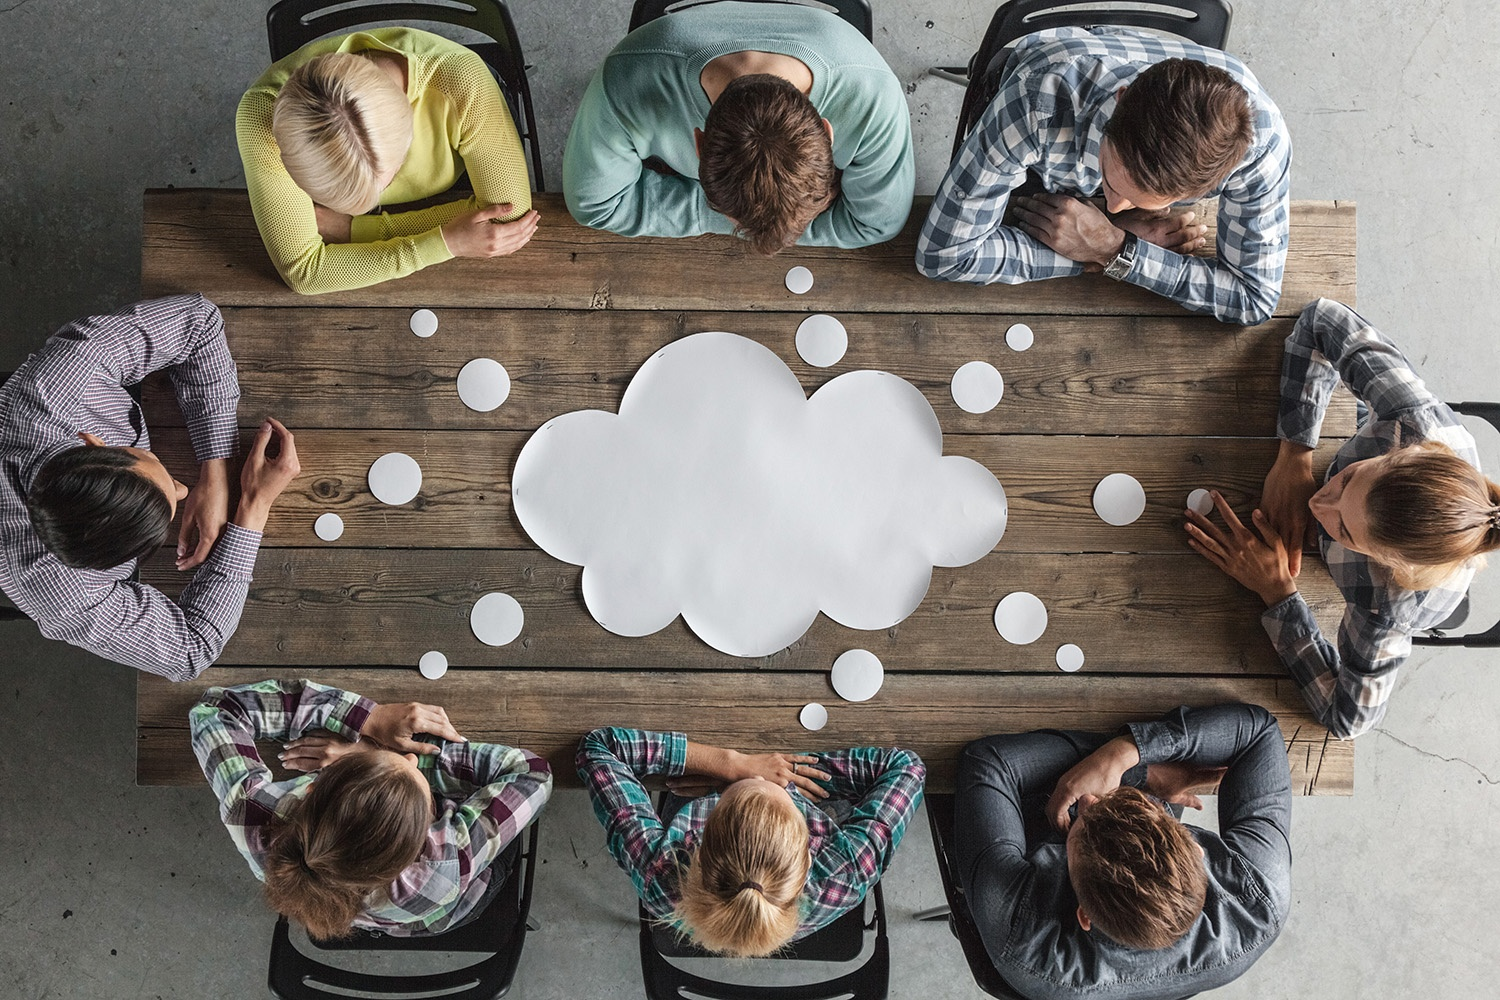 5 Additional Expert Tips for Effective Focus Group Moderation